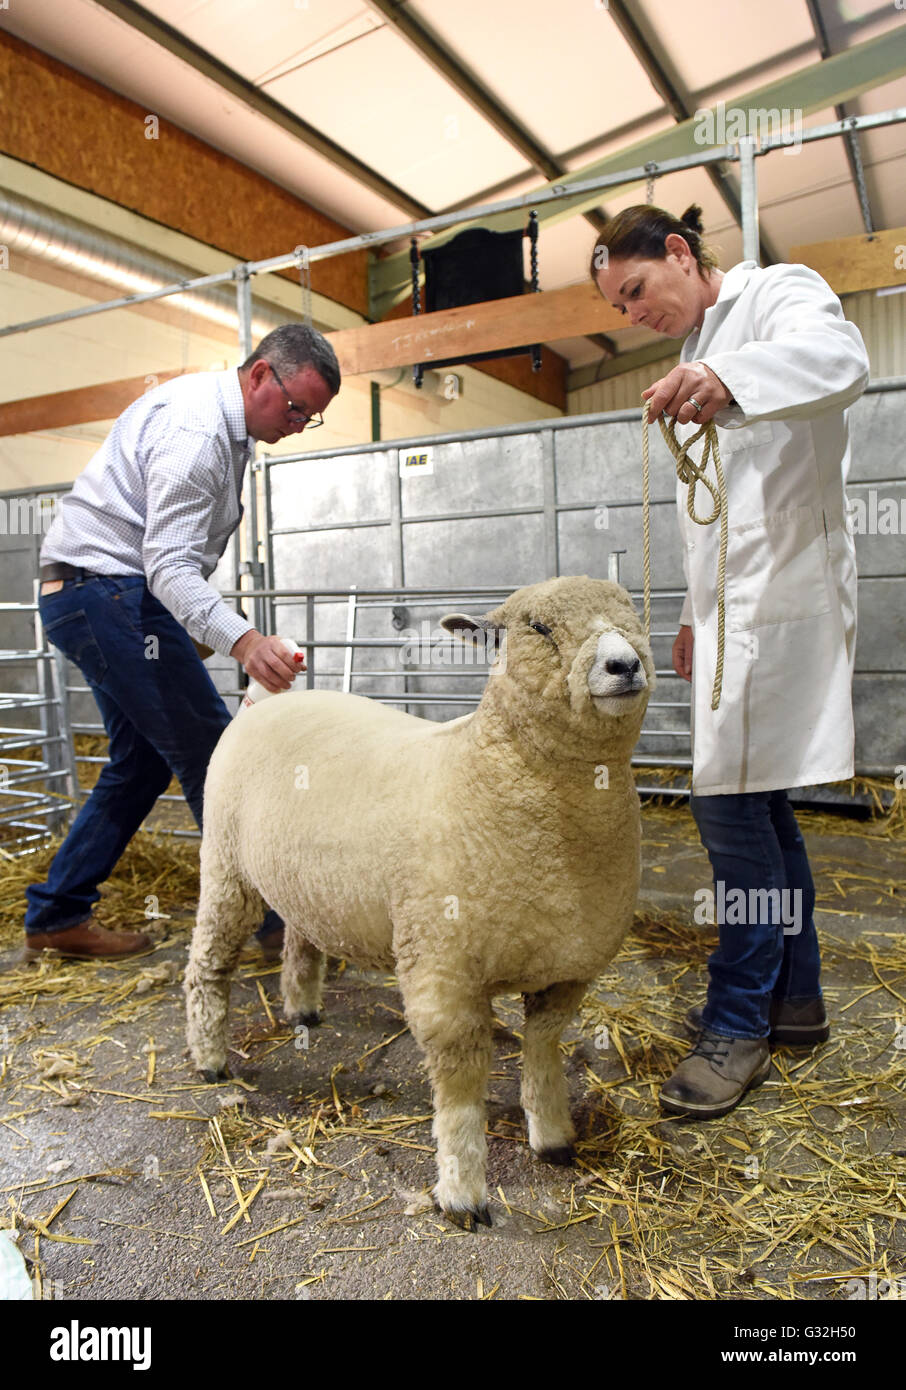 A Ryeland sheep being groomed for showing at Staffordshire County Show - Stock Image